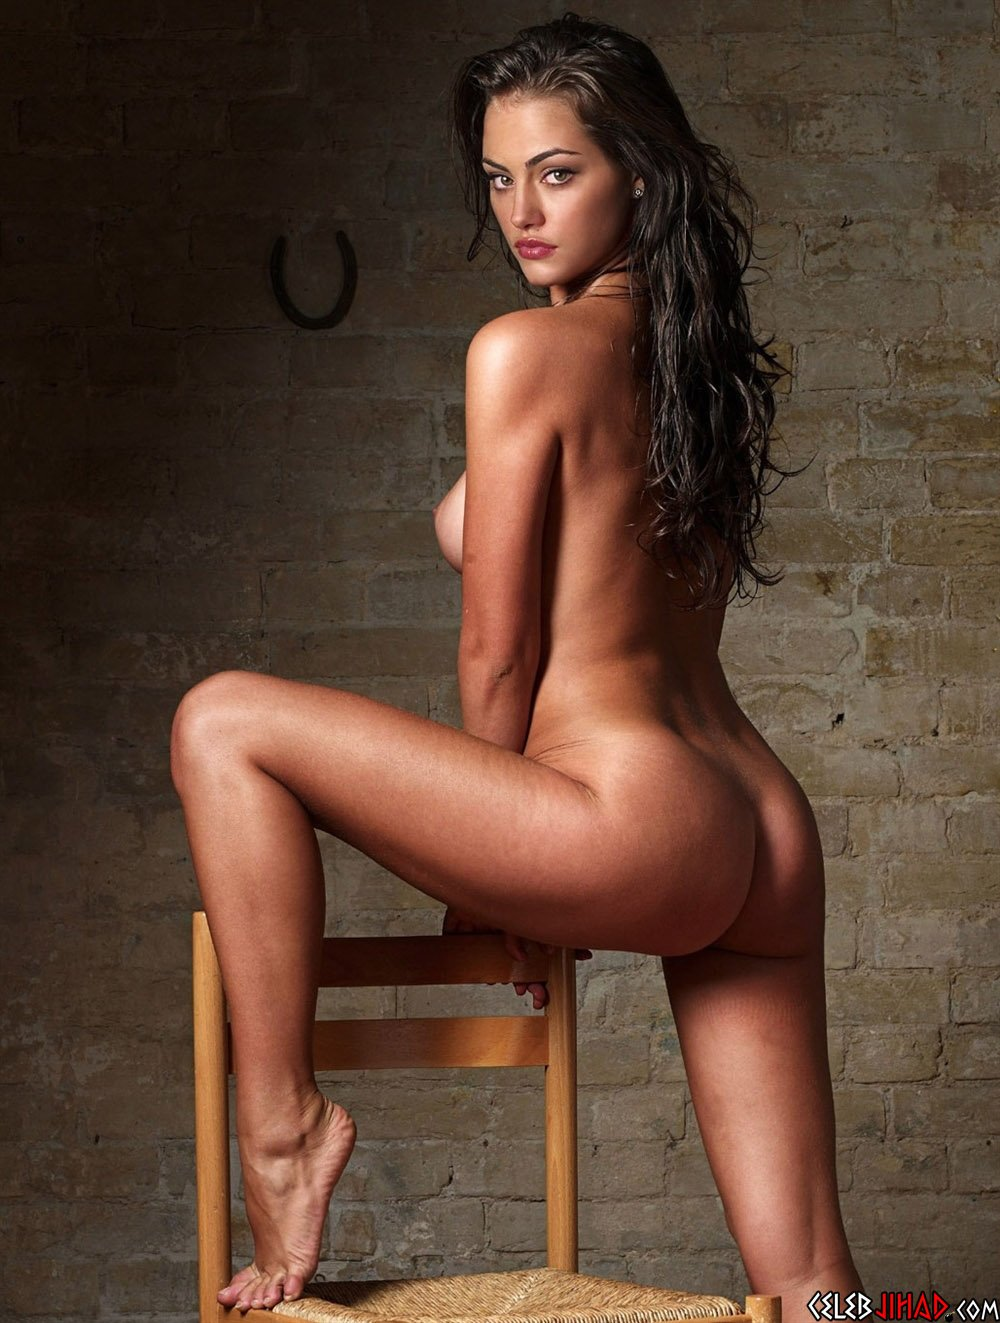 Nude Phoebe Tonkin nudes (85 foto and video), Ass, Fappening, Twitter, cleavage 2020